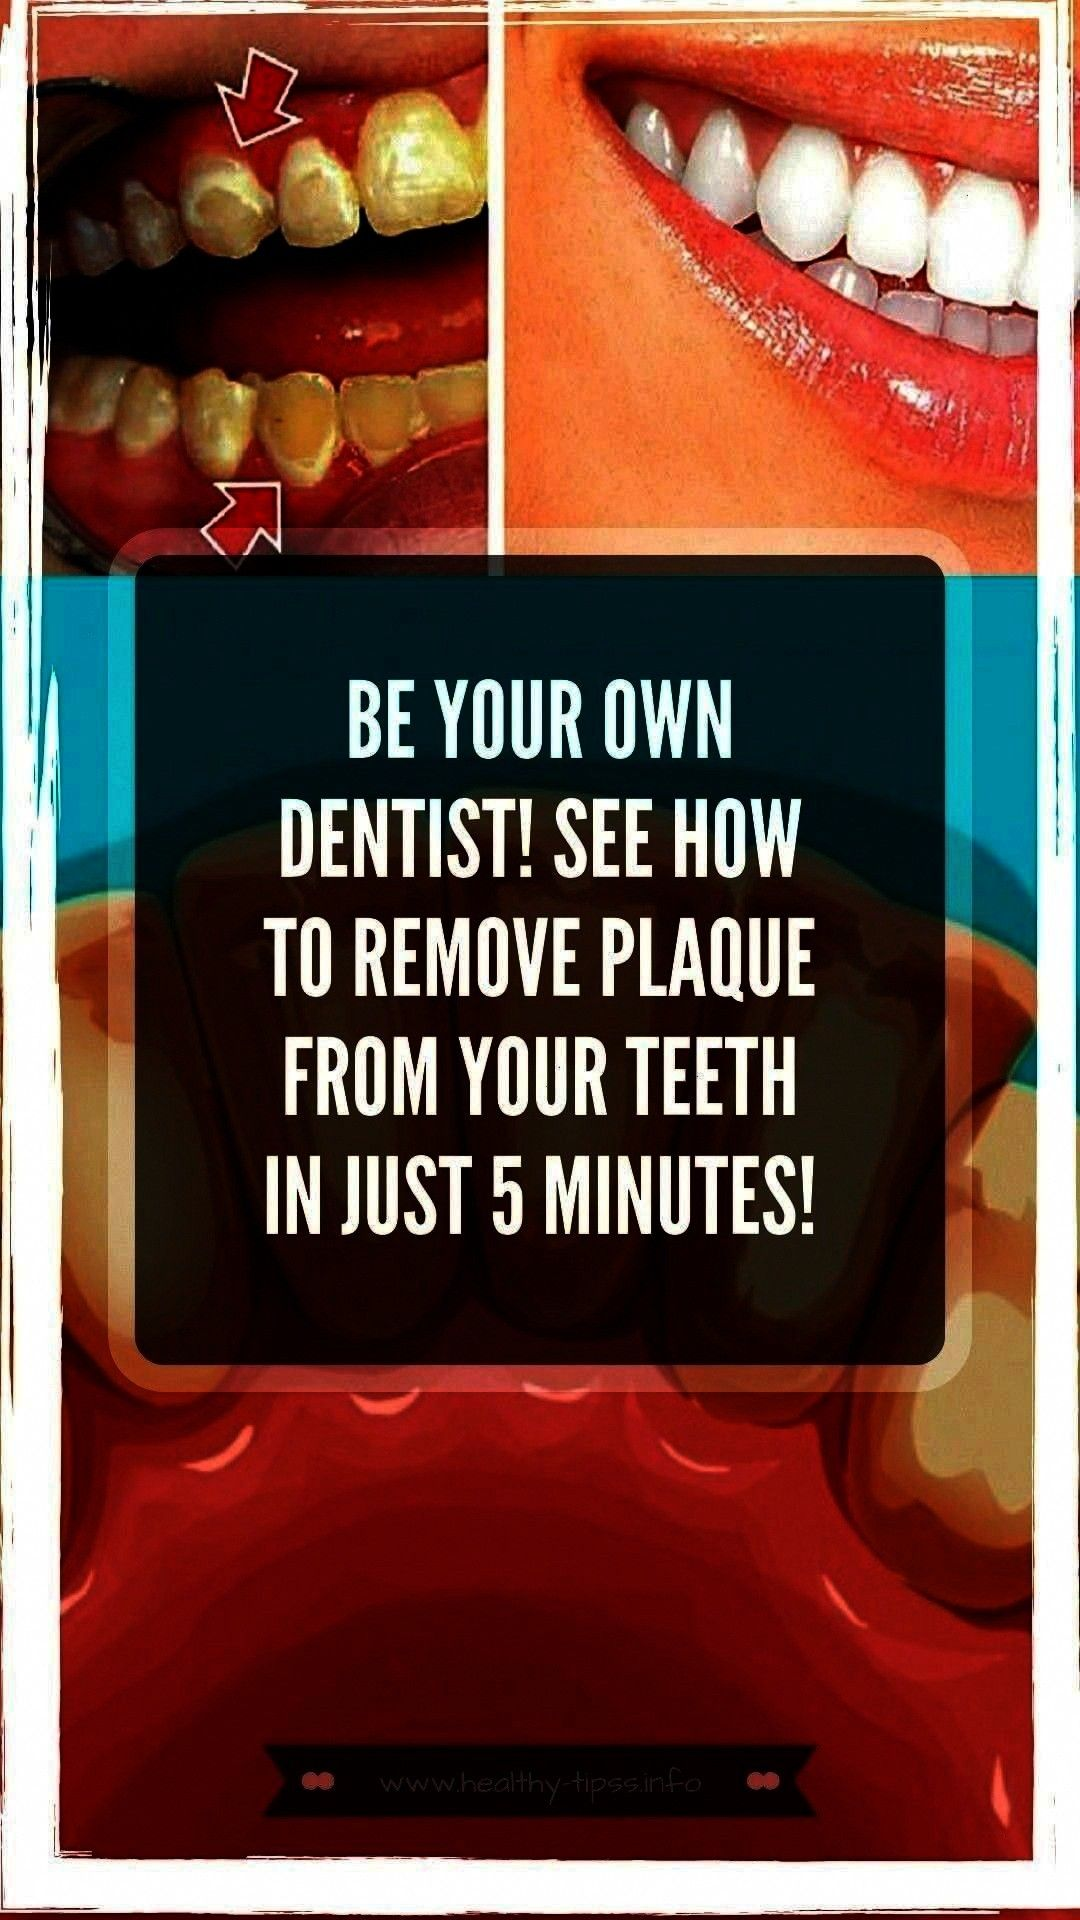 #oralhealthandhygiene #alwaysusually #firstdentists #healthfirst #toothpaste #healthcare #answerare...